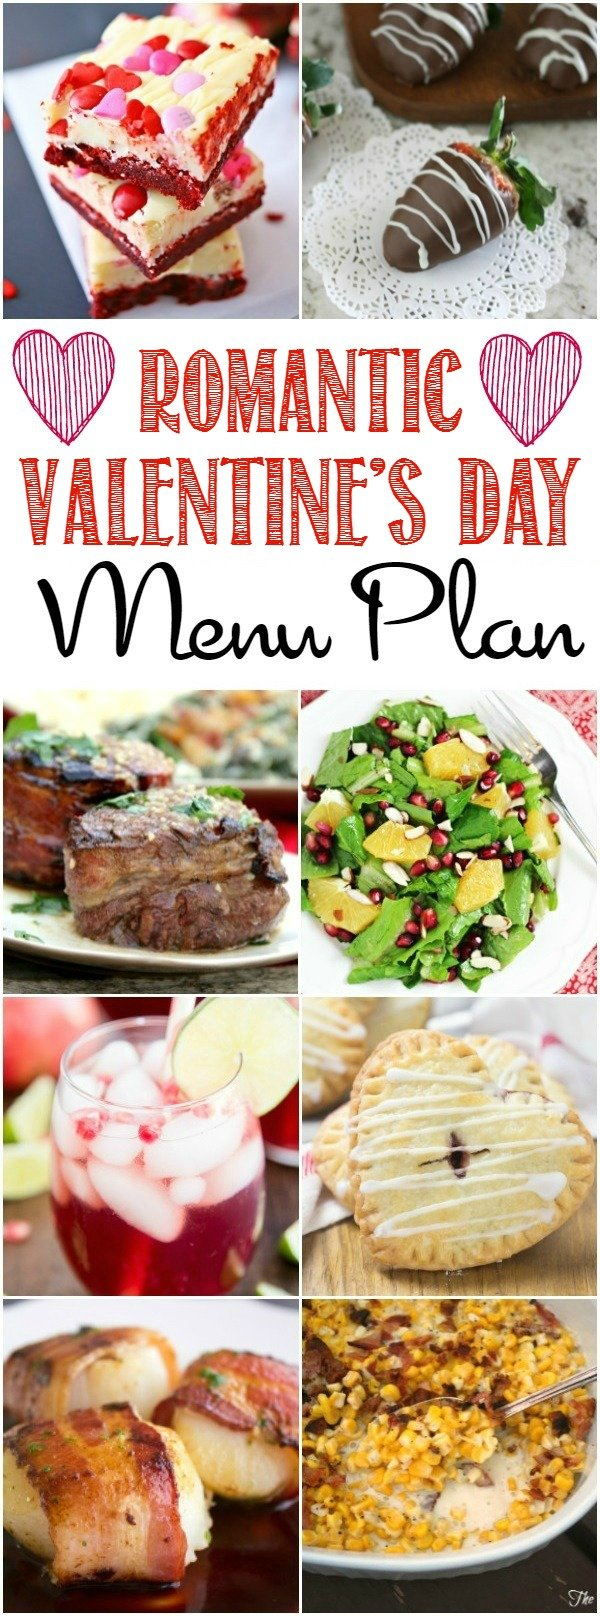 We've got all the recipes you need with this romantic Valentine's Day dinner menu plan to surprise your loved one with a night in.